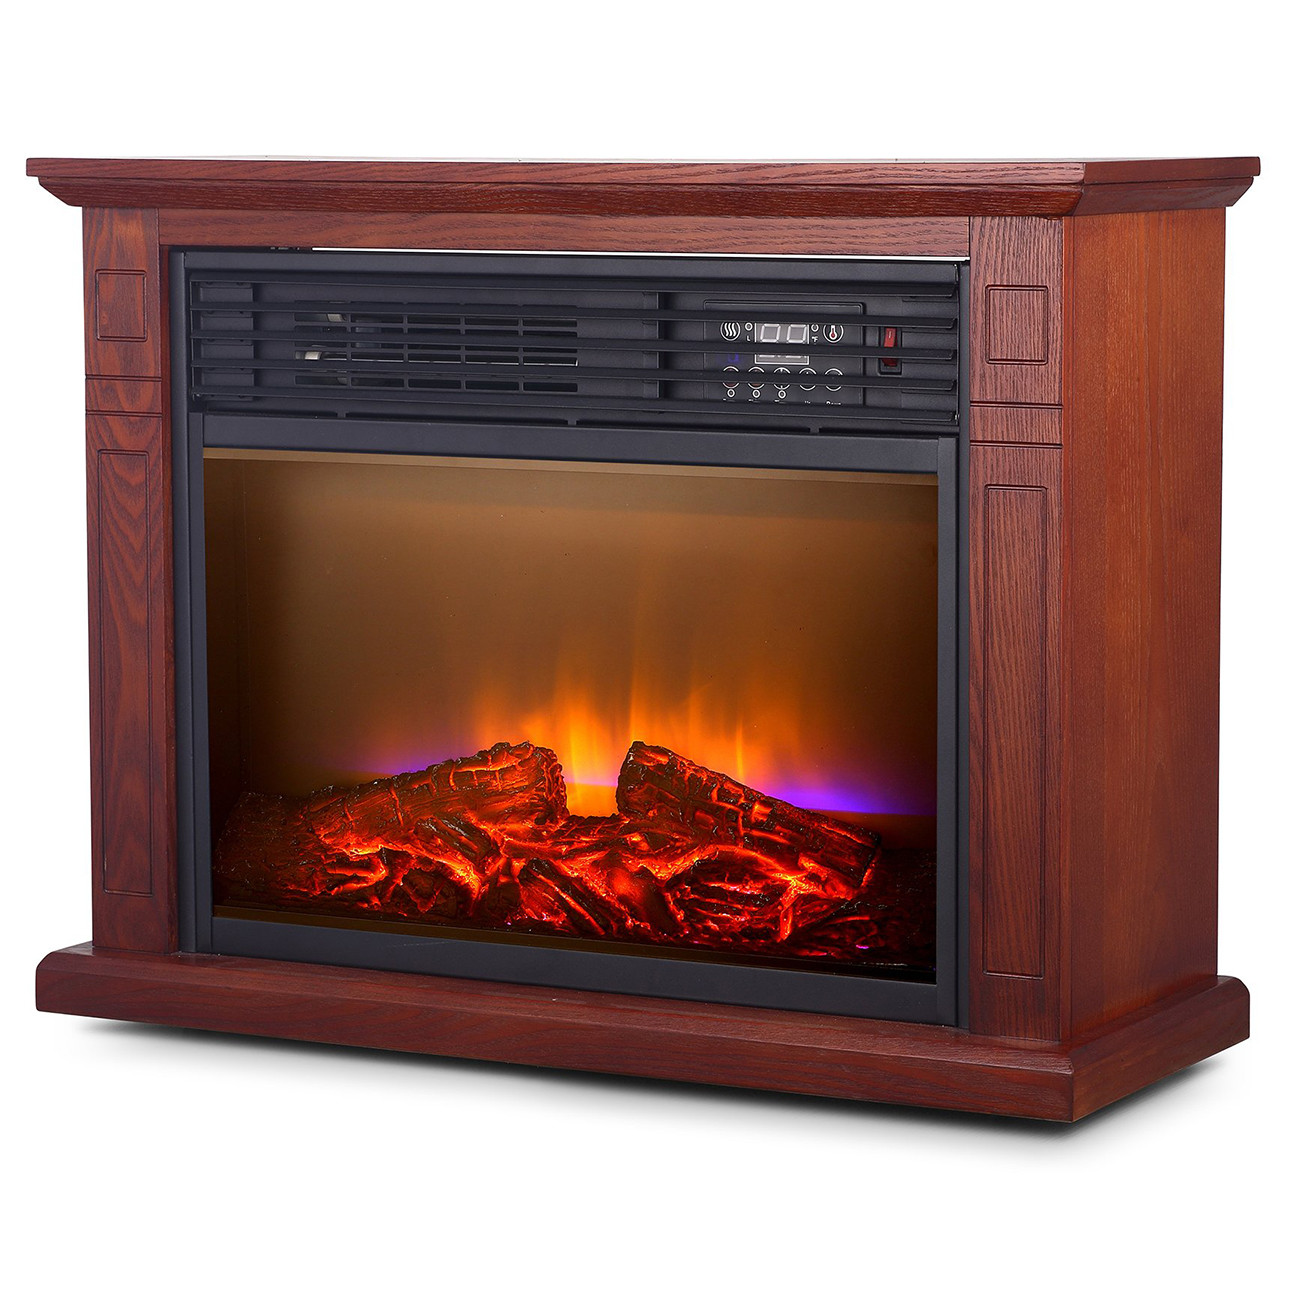 Best ideas about Infrared Fireplace Heater . Save or Pin Room Electric Quartz Infrared Fireplace Heater Now.